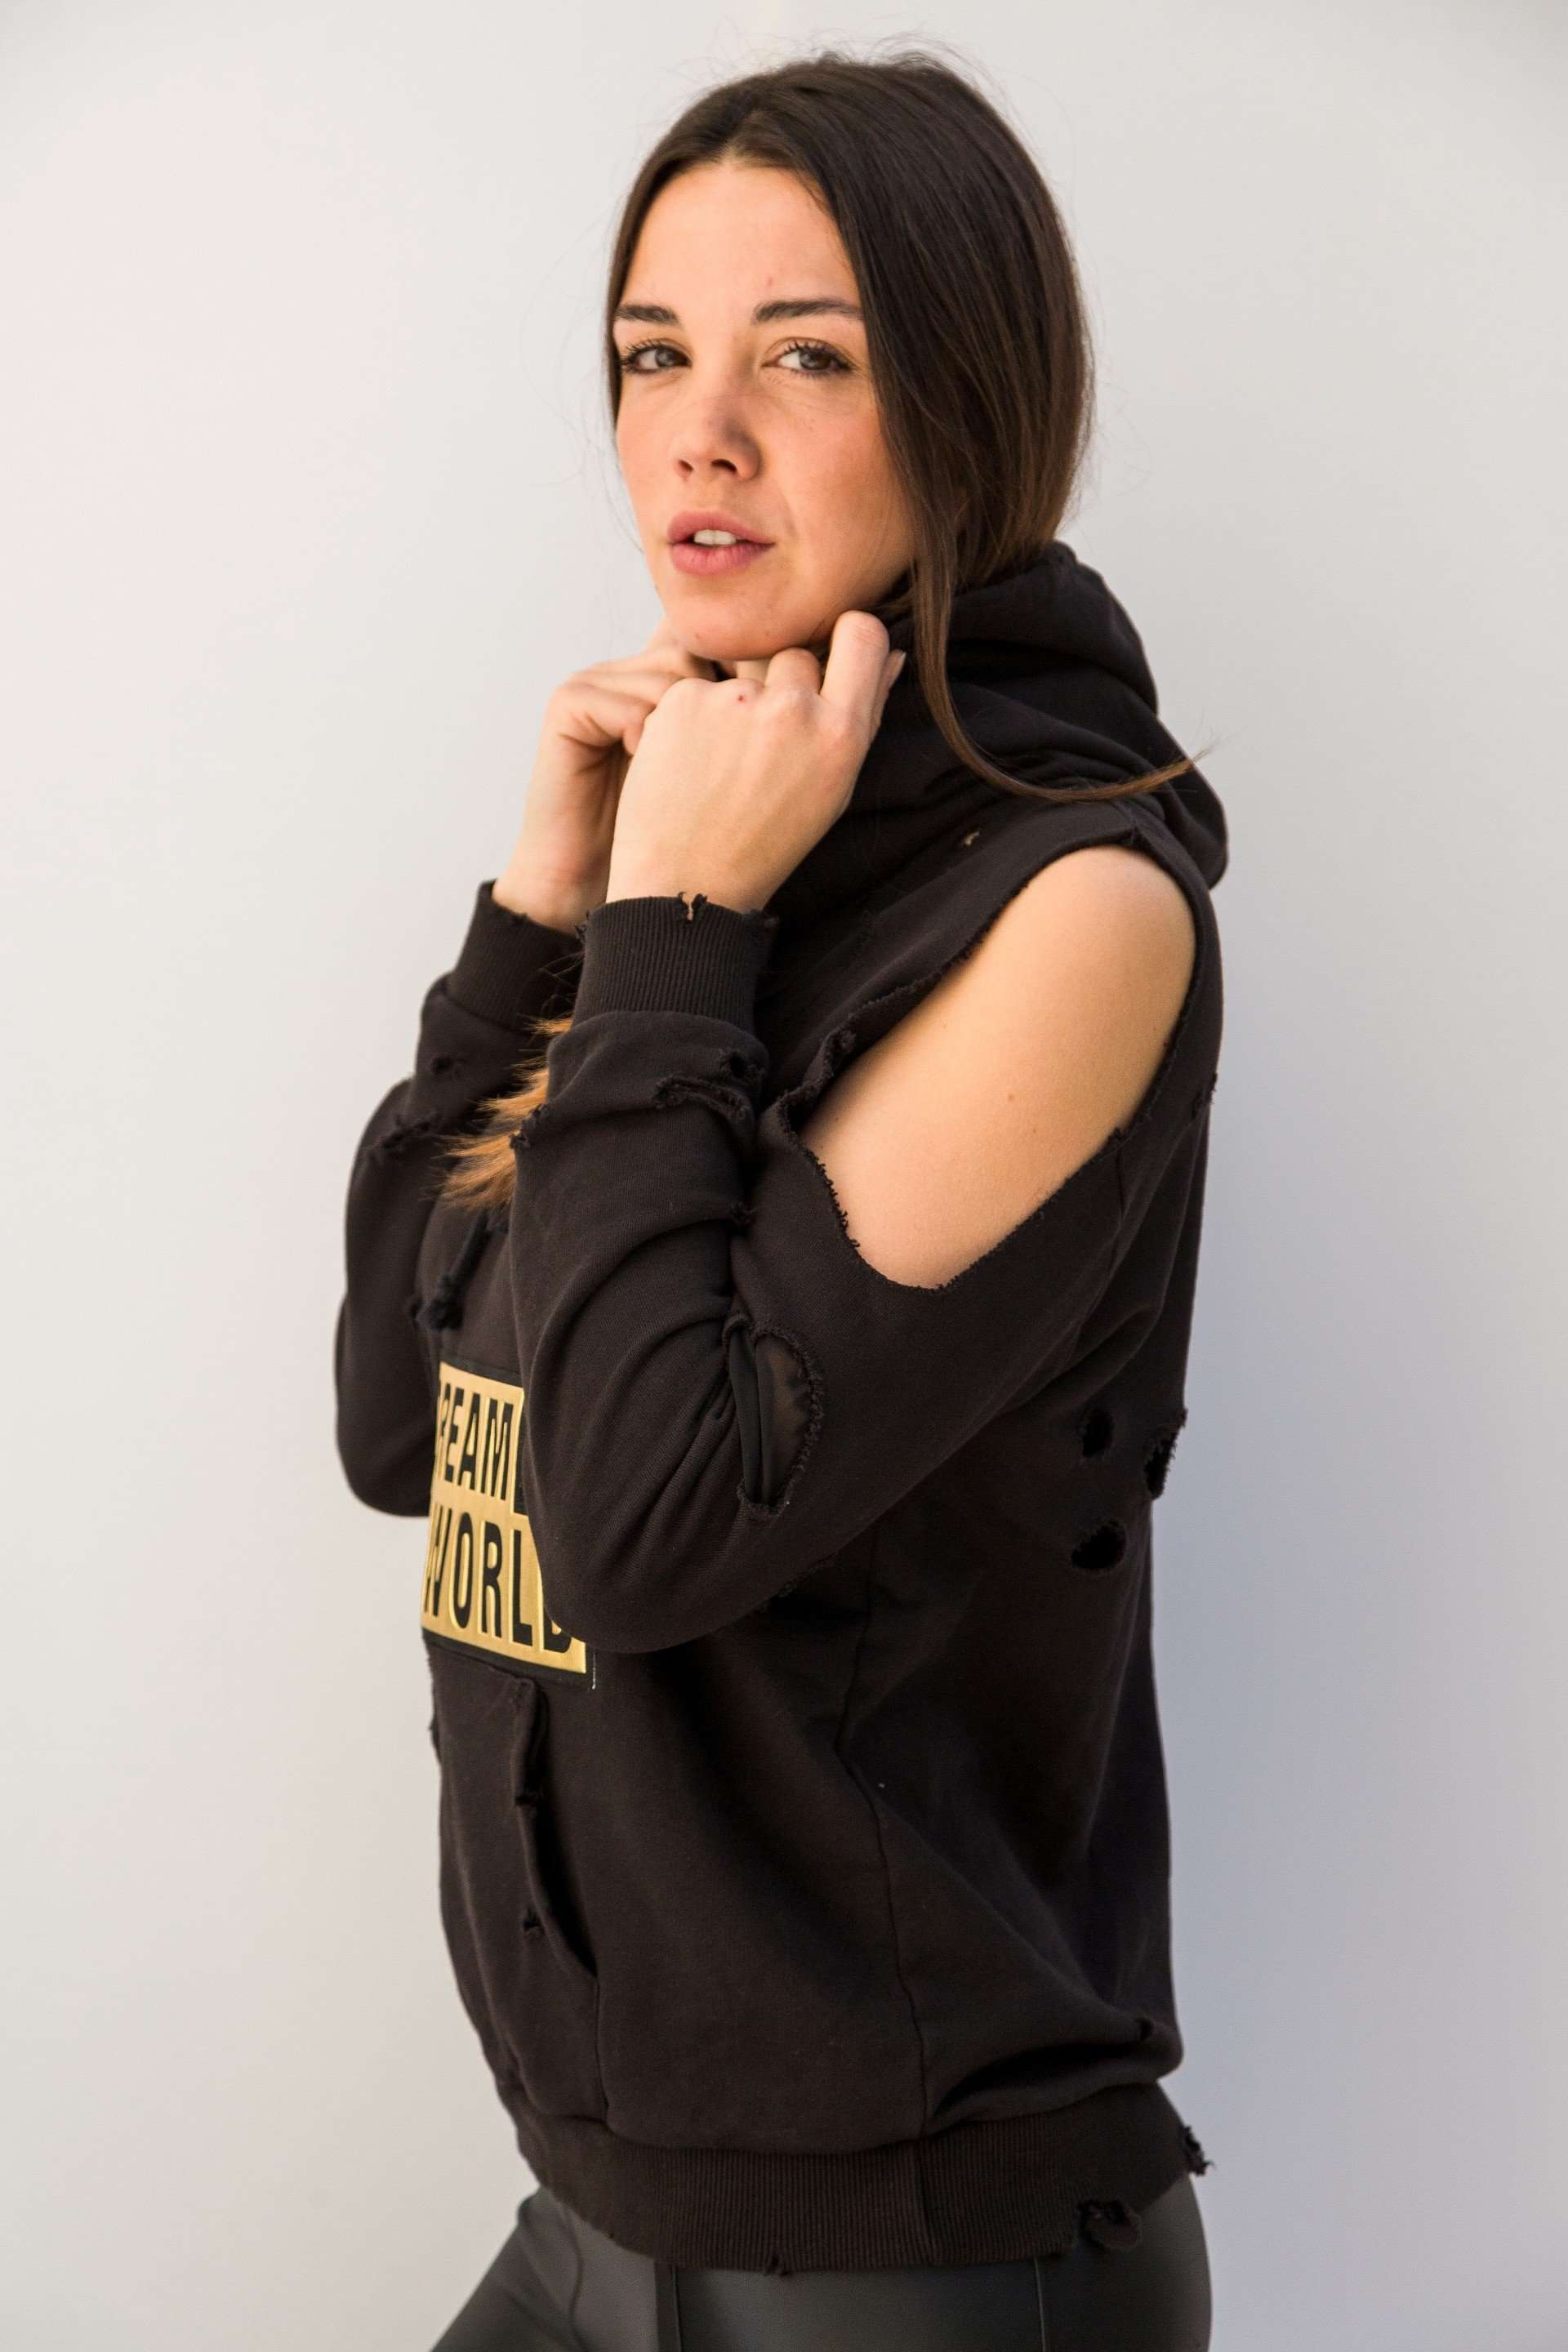 PC451 - Ripped hoodie black,Posh couture, Curated Designer at Freesigners.com